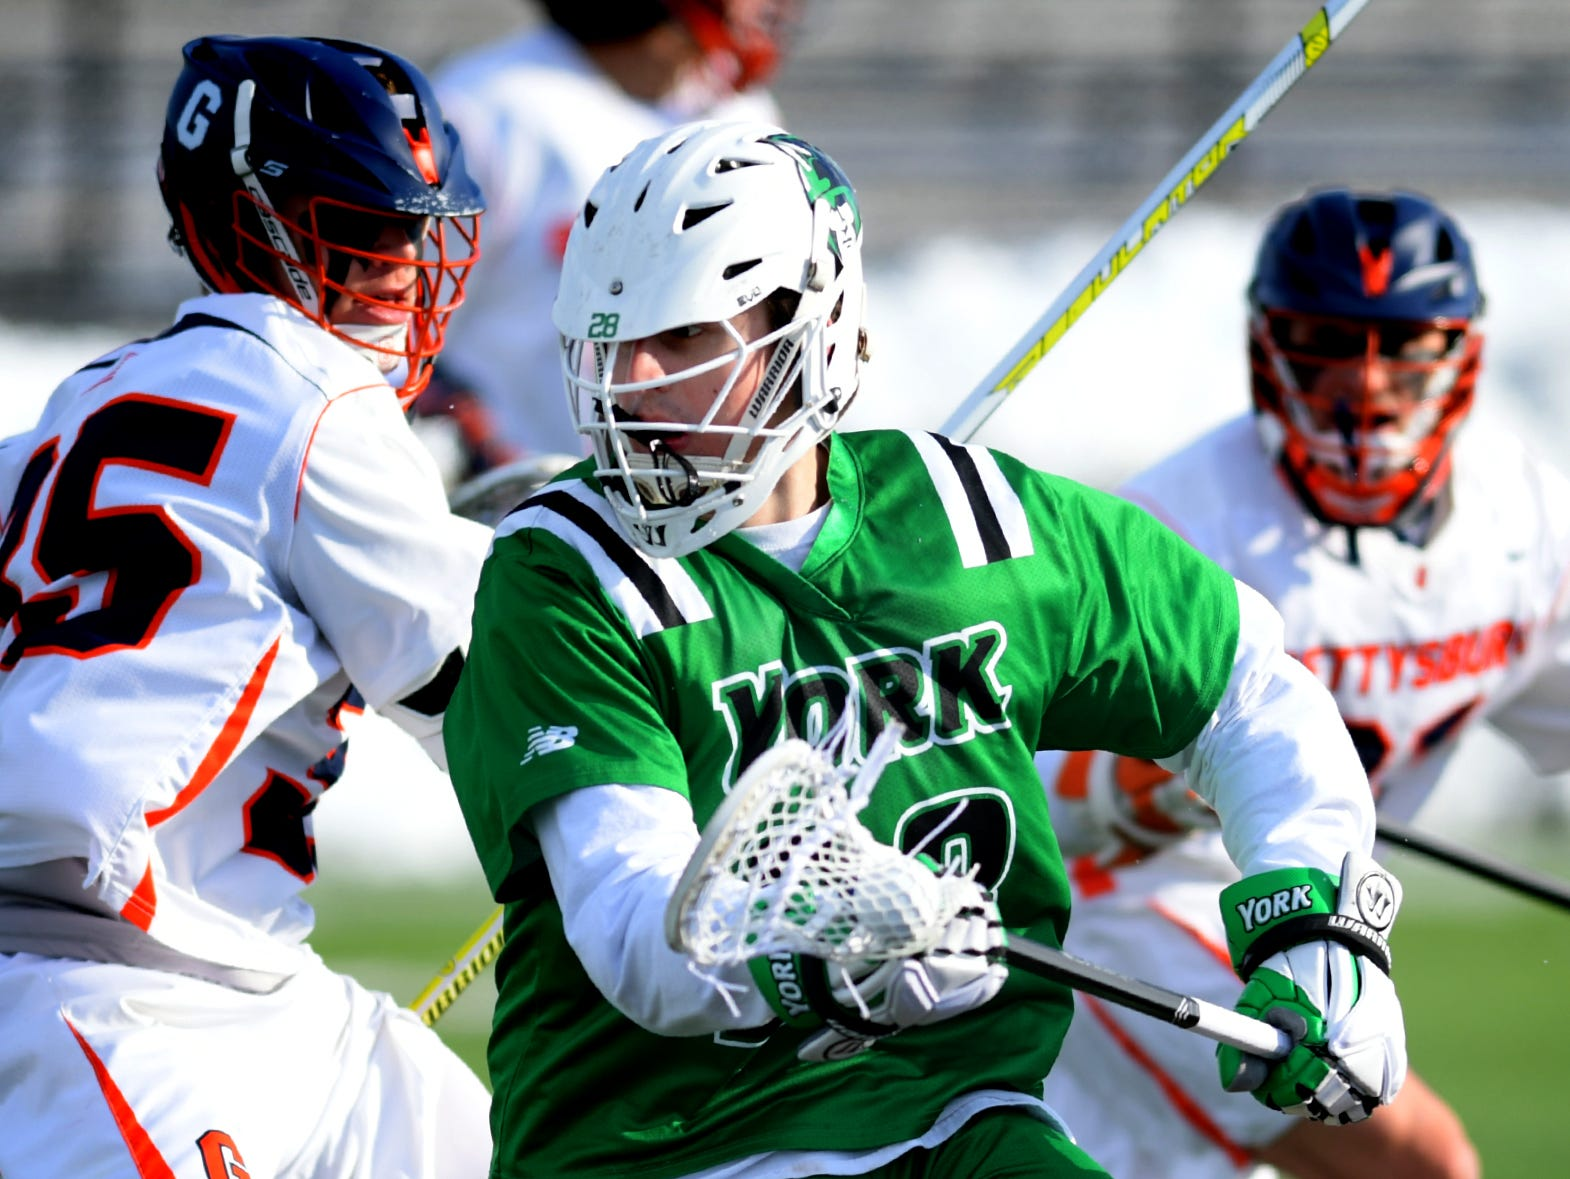 York College's Thomas Pfeiffer changes directions with Gettysburg College defenders pursuing during lacrosse action at Gettysburg Wednesday, March 6, 2019. Both teams were ranked in the top 10 nationally in NCAA Division III men's lacrosse coming into the game. York won 14-6. Bill Kalina photo